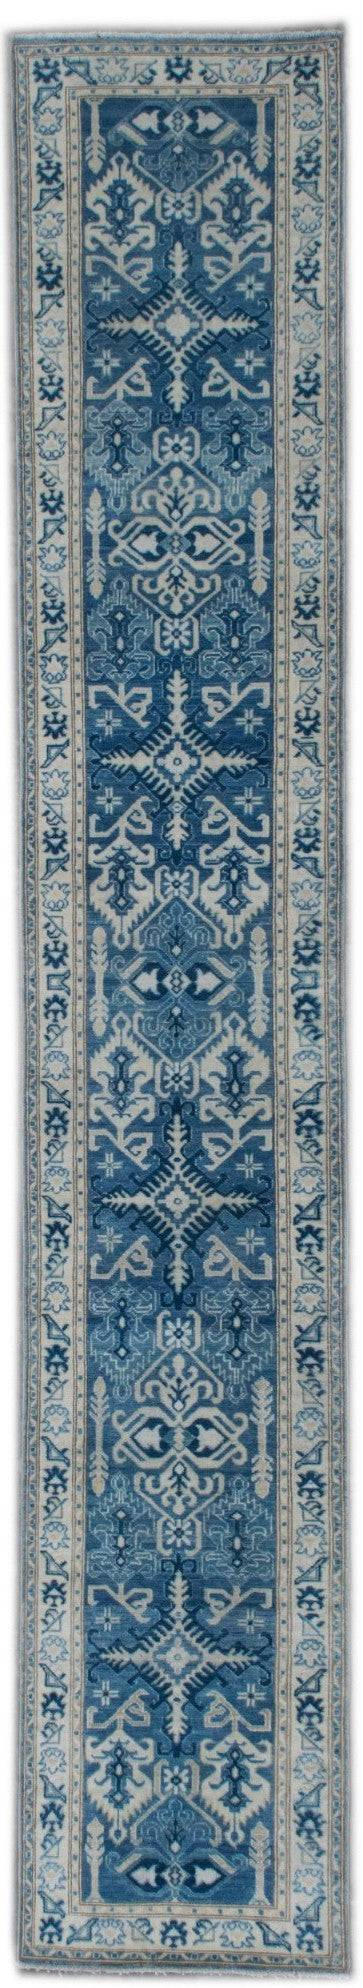 Handmade Sultan Collection Hallway Runner | 492 x 80 cm - Najaf Rugs & Textile